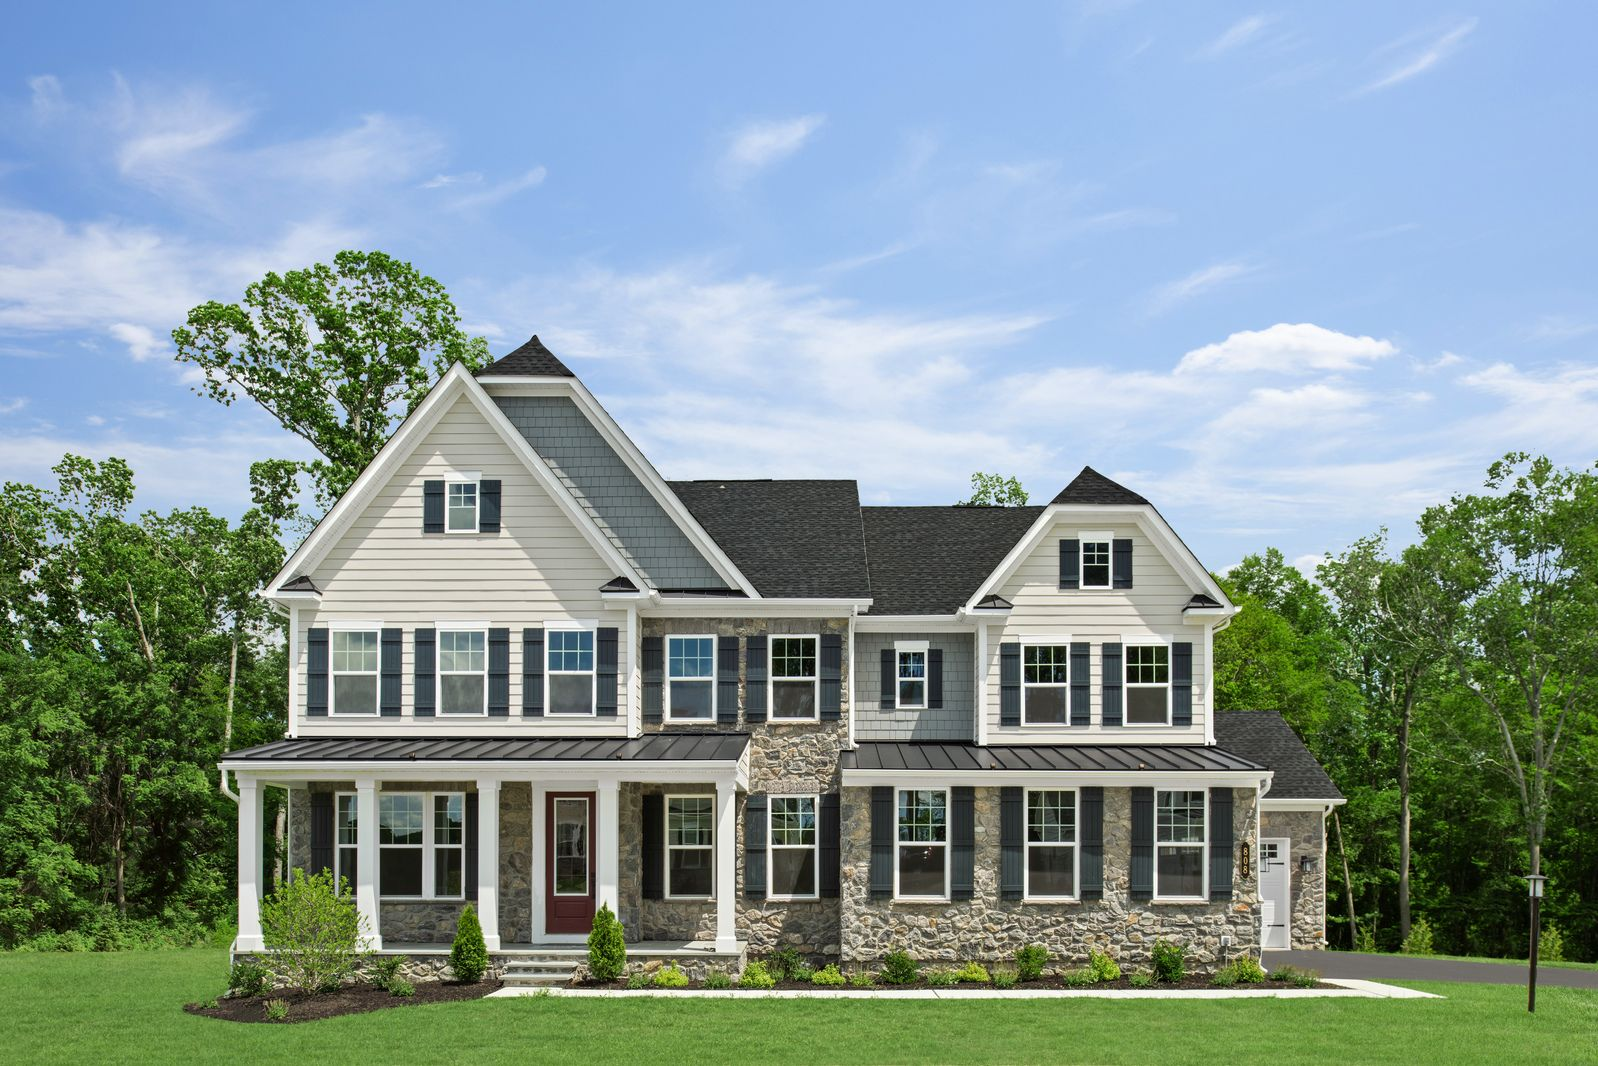 Welcome to Greystone:The only new single homes with luxury features you want, in a neighborhood with sidewalks and 7 miles of trails, 3 minutes from West Chester Borough. Schedule your visit today.